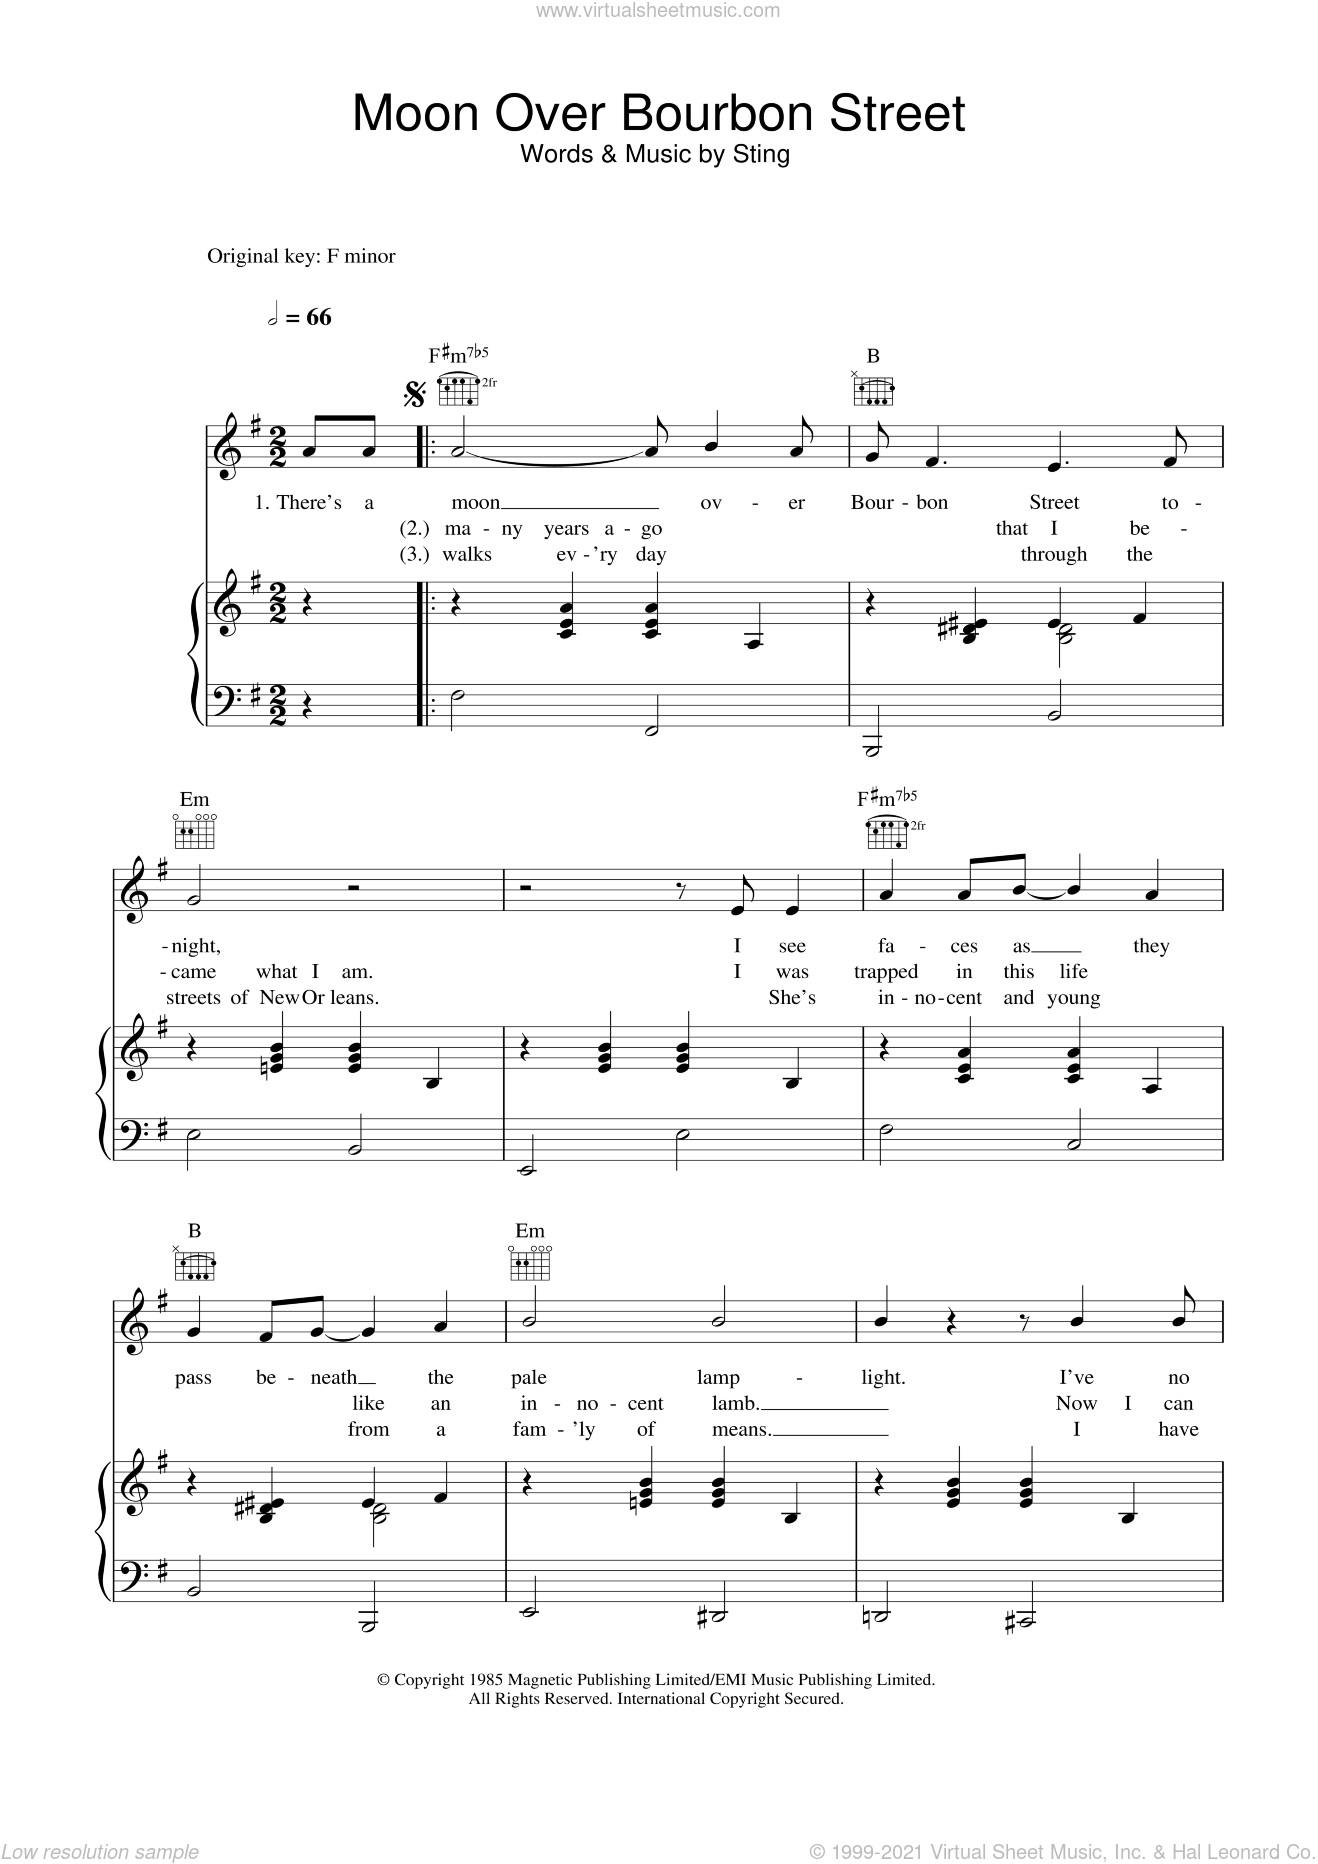 Moon Over Bourbon Street sheet music for voice, piano or guitar by Sting